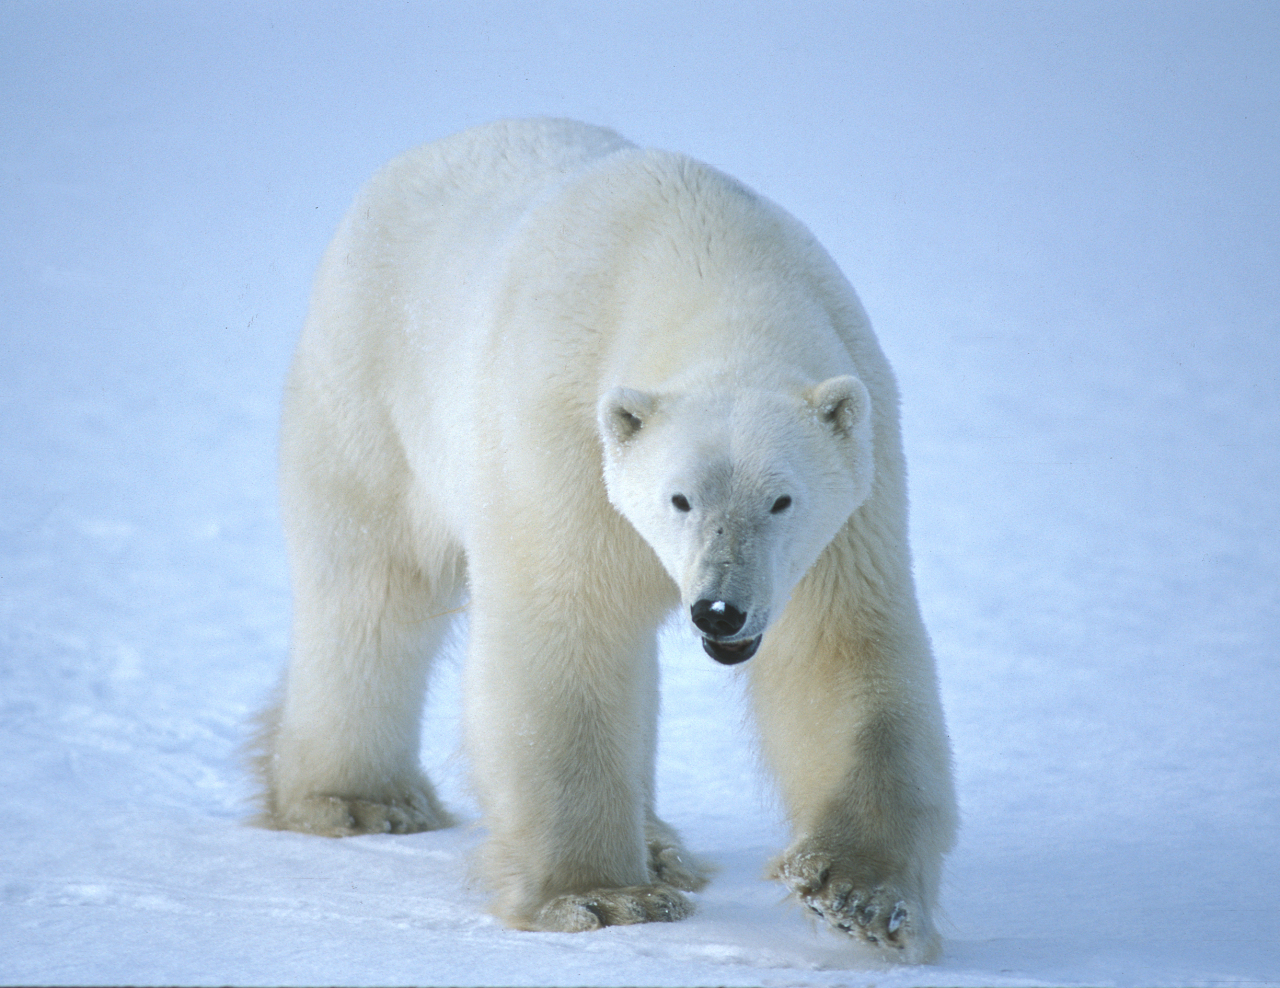 Learn more about how Arctic species are affected